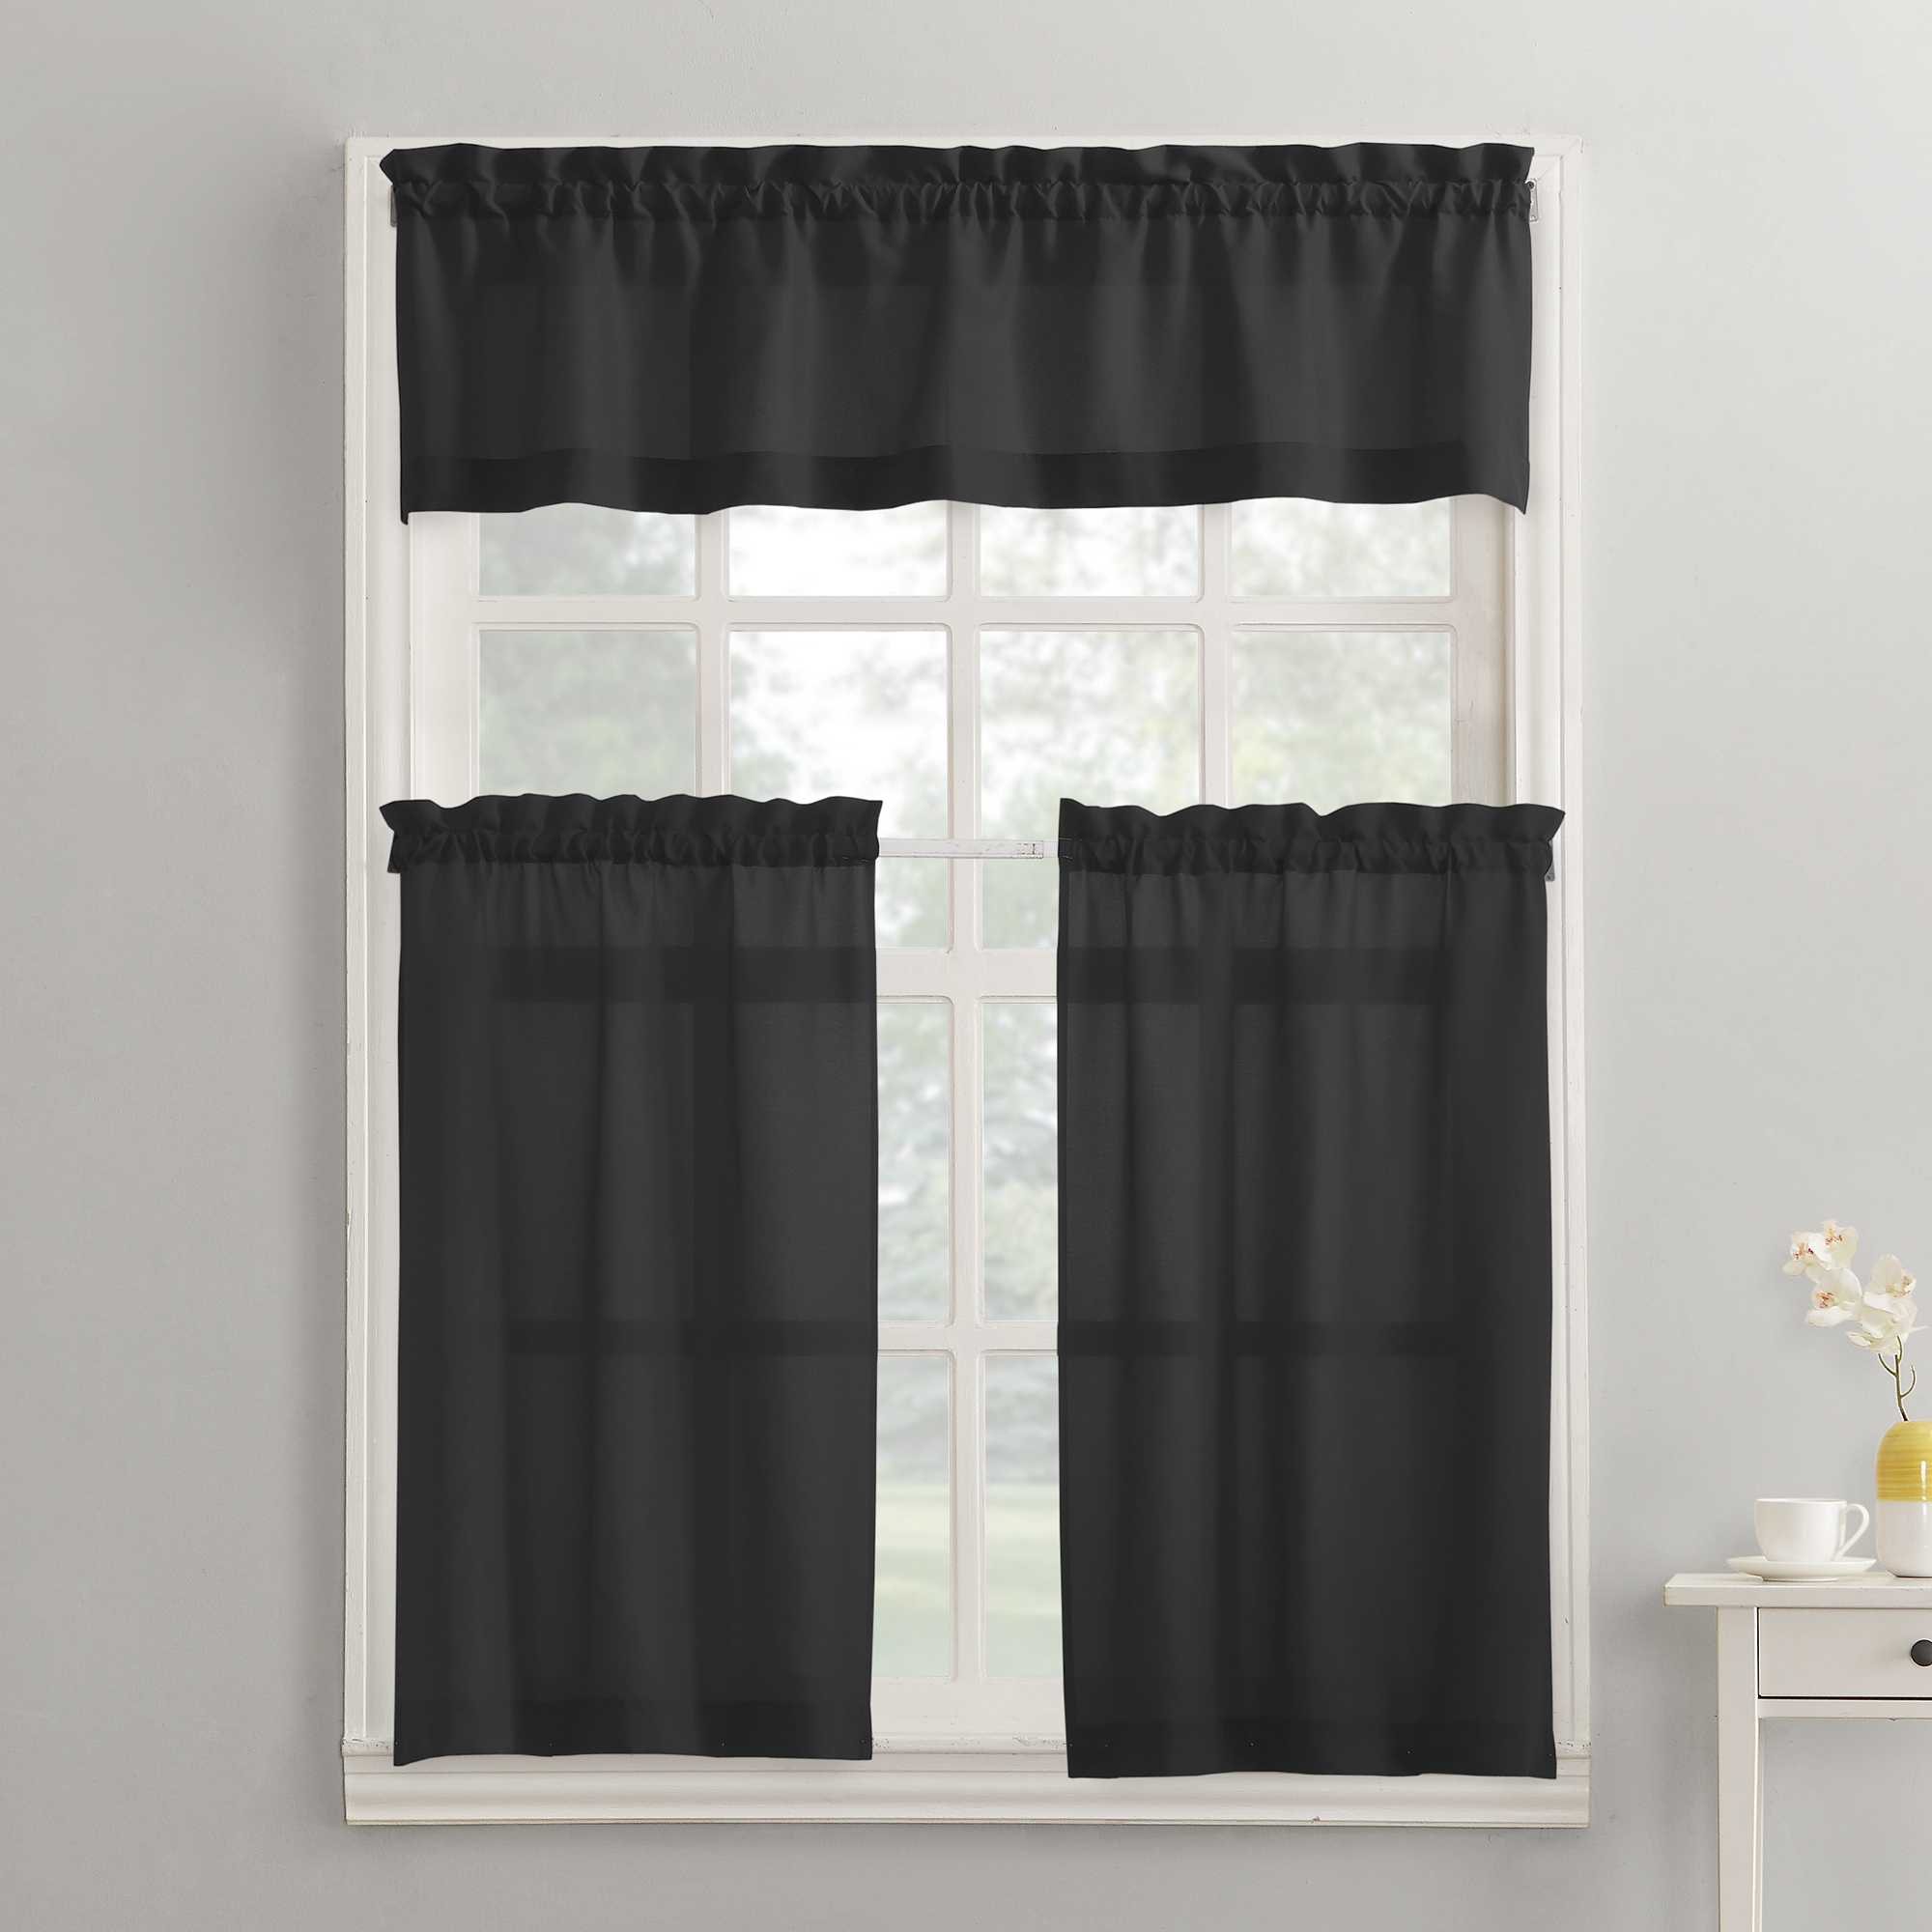 Mainstays Solid 3 Piece Kitchen Curtain Tier And Valance Set Regarding Tree Branch Valance And Tiers Sets (View 2 of 20)